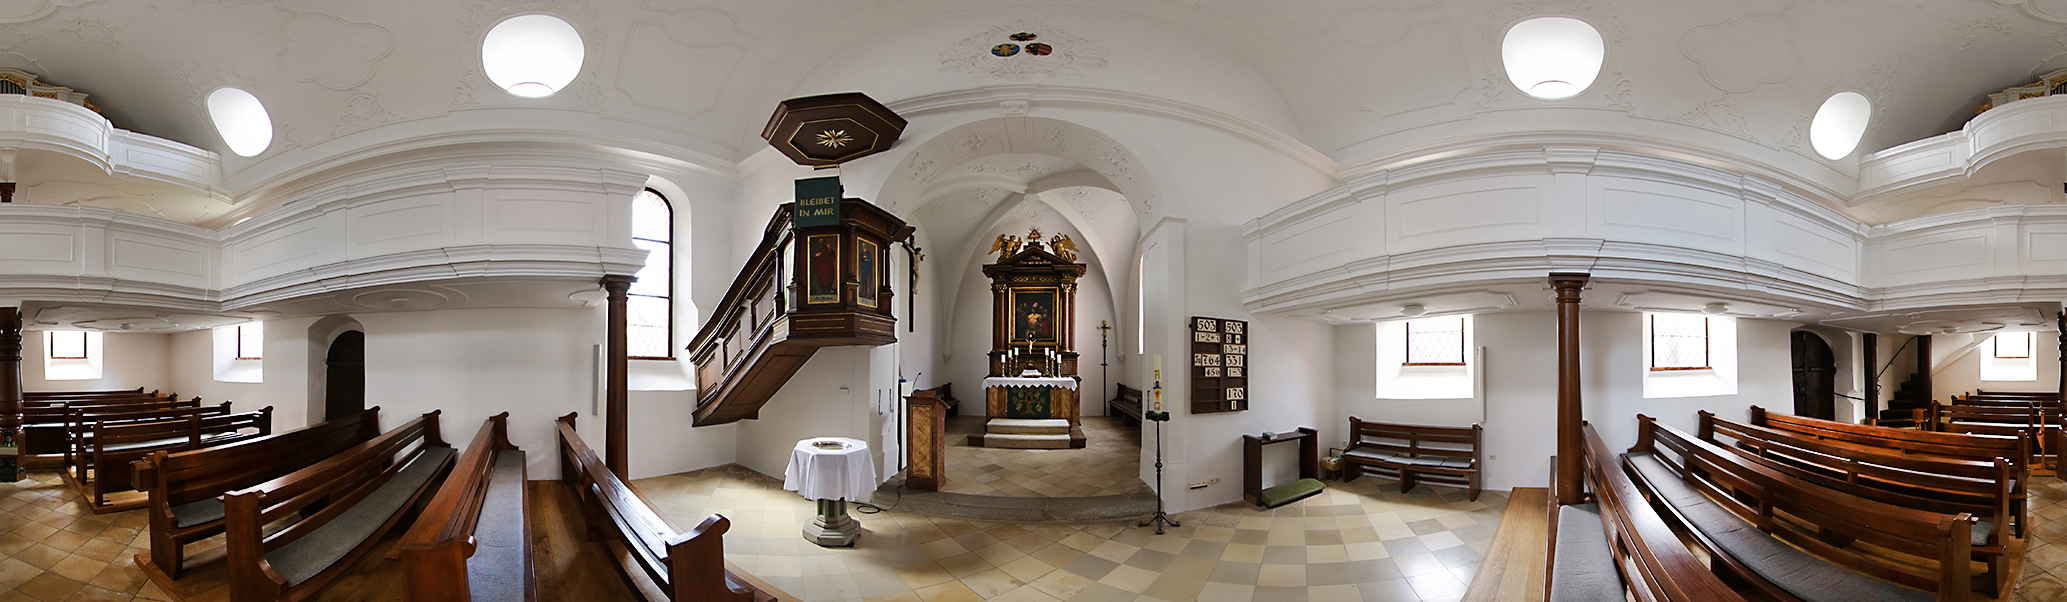 Thomaskirche_Asiba_Flyer_Panorama